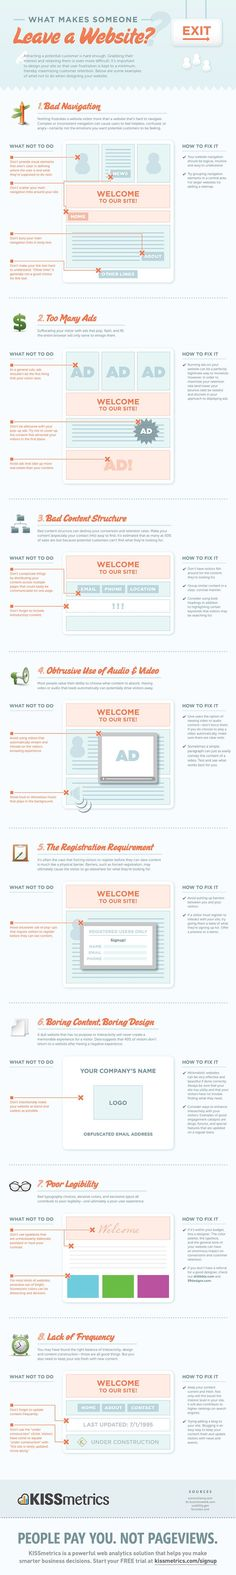 Have you experienced any of these issues?Great infographic on what makes someone leave a website. #design #web